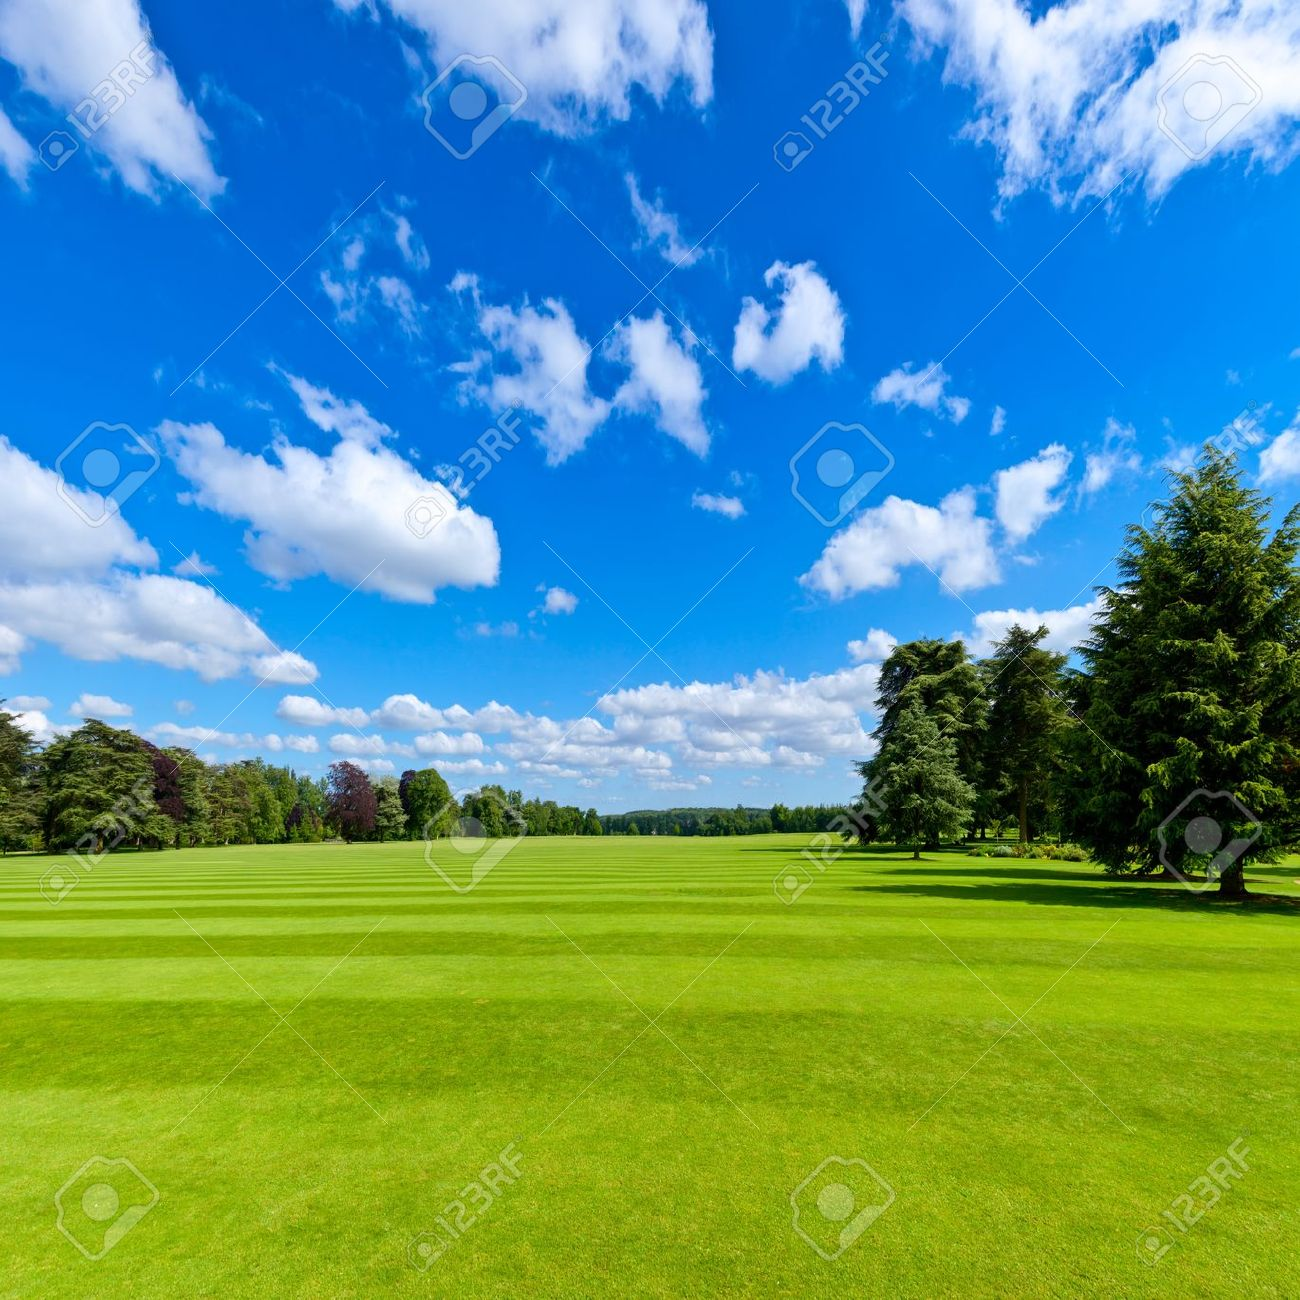 summer landscape with green park lawn and blue sky stock photo